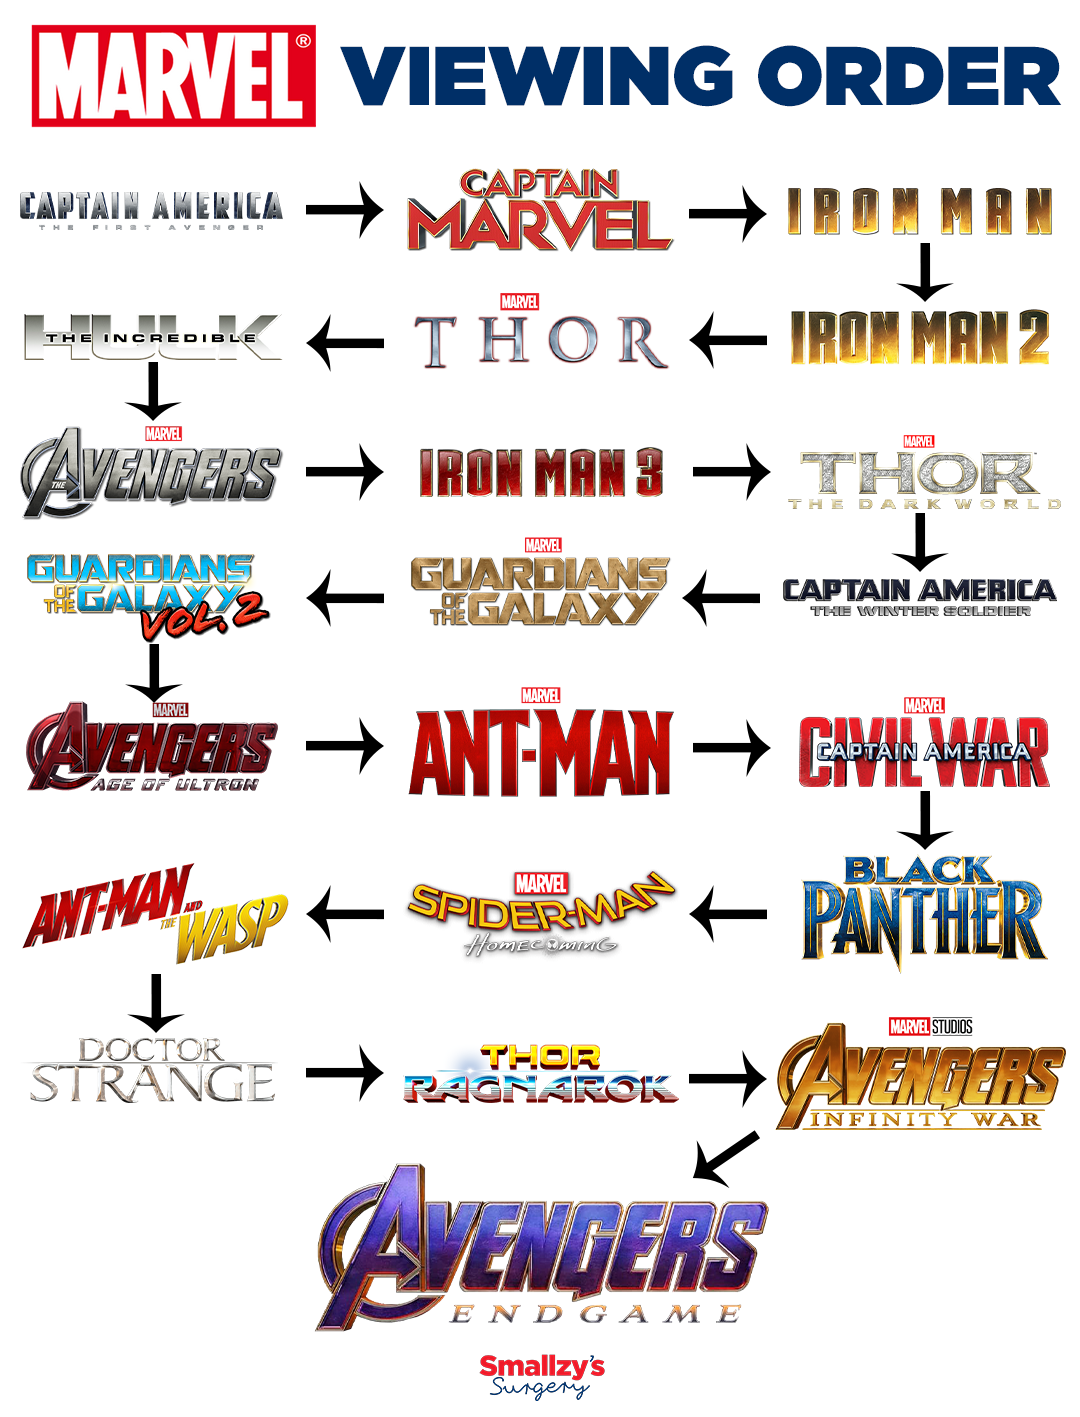 Marvel Movies Viewing Order Marvel Movies Marvel Cinematic Avengers